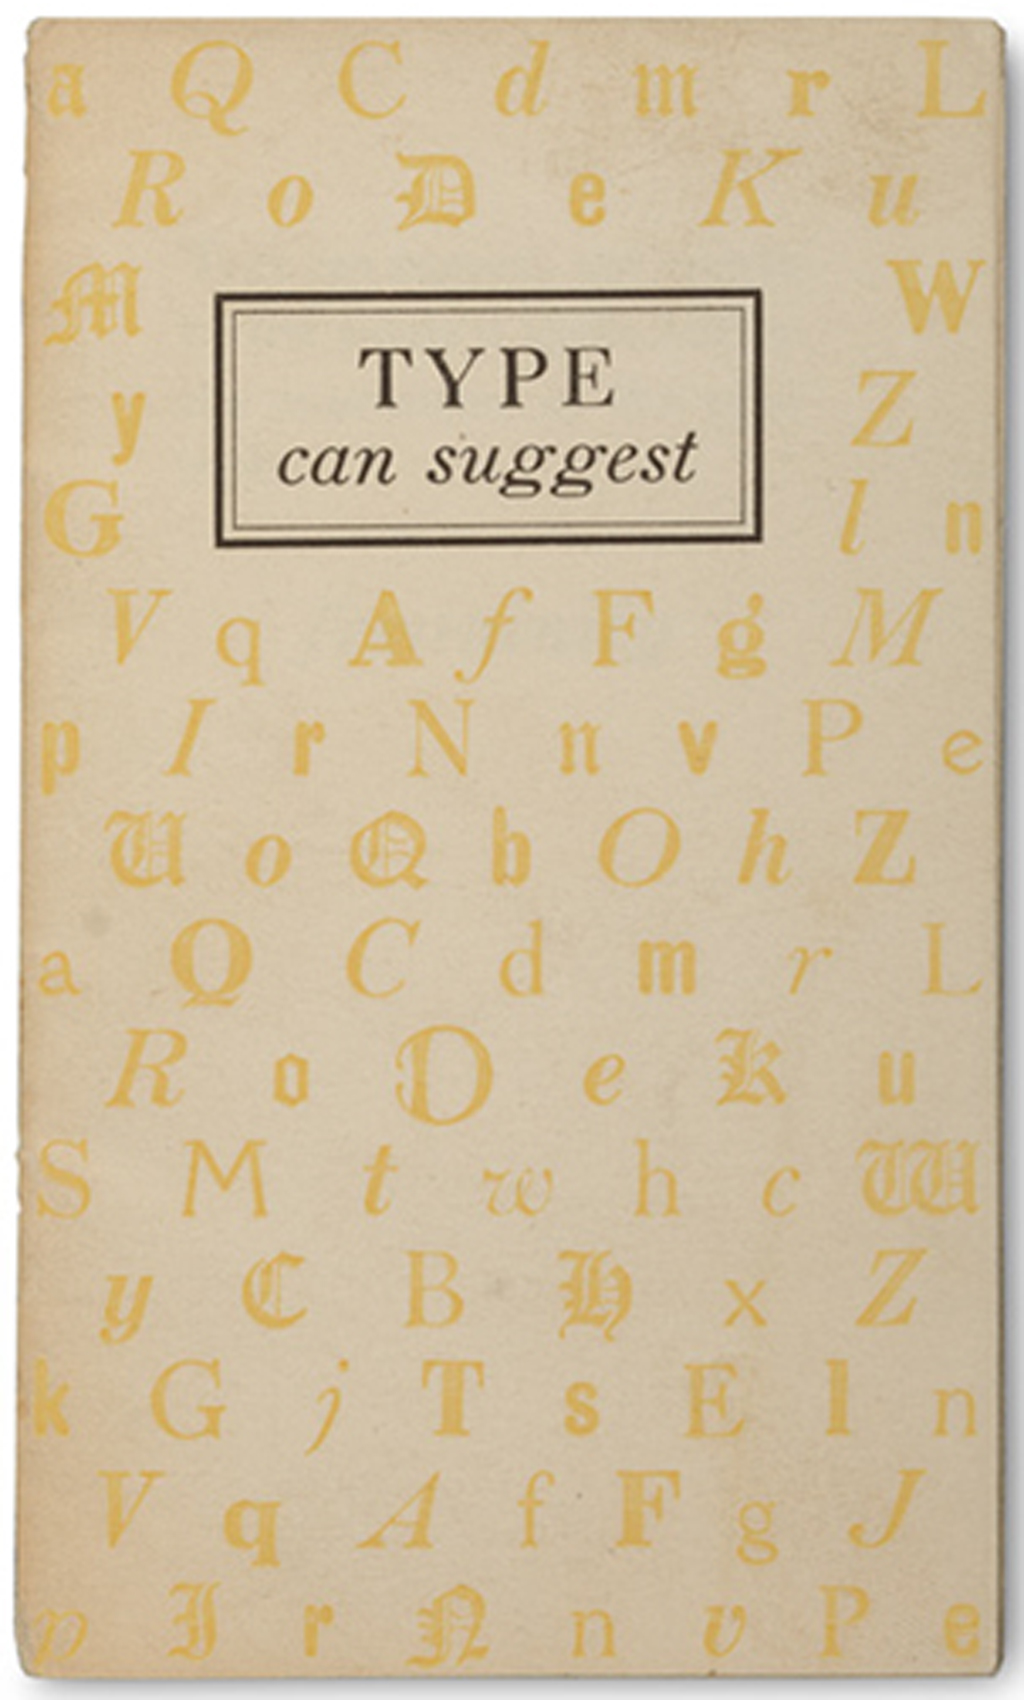 Type Can Suggest by Benjamin Sherbow (Mittineague: Strathmore Paper, n.d.). Photograph by Vincent Trinacria.